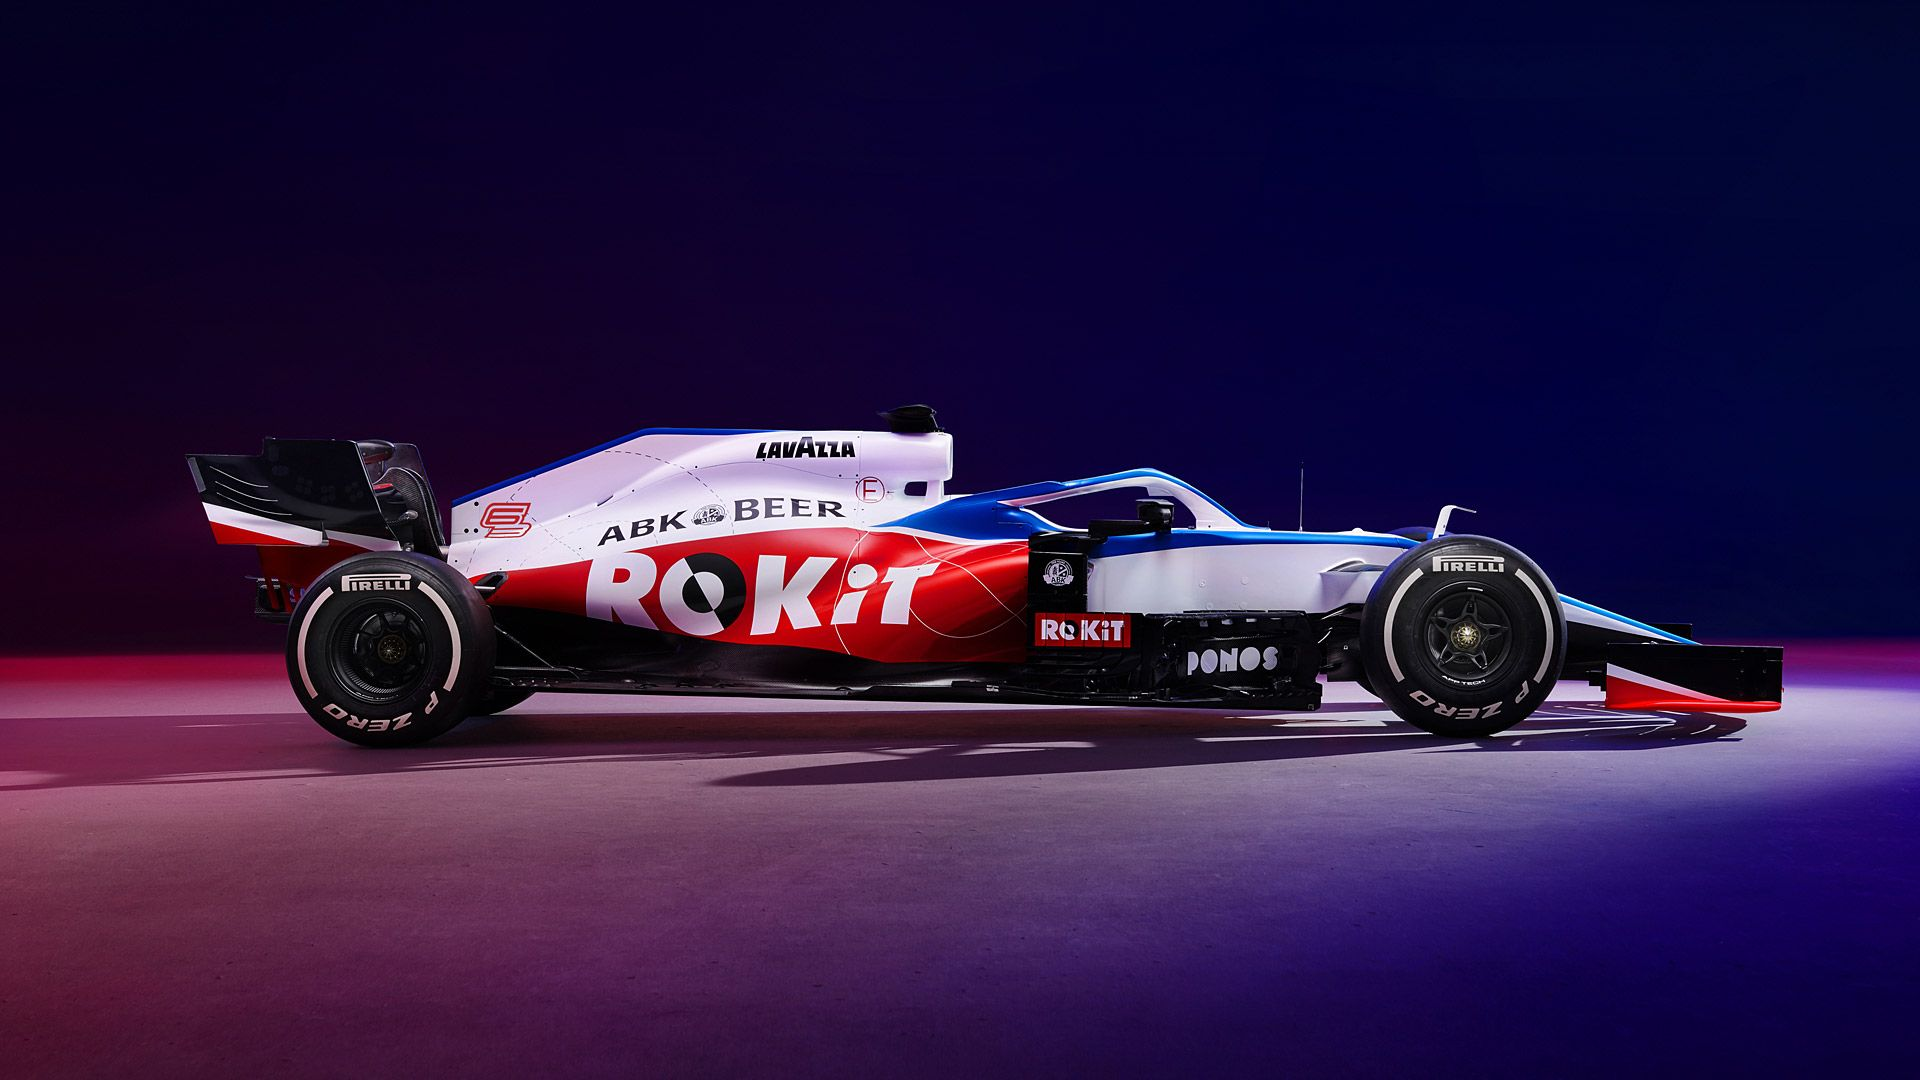 Williams Racing Zoom Background 5